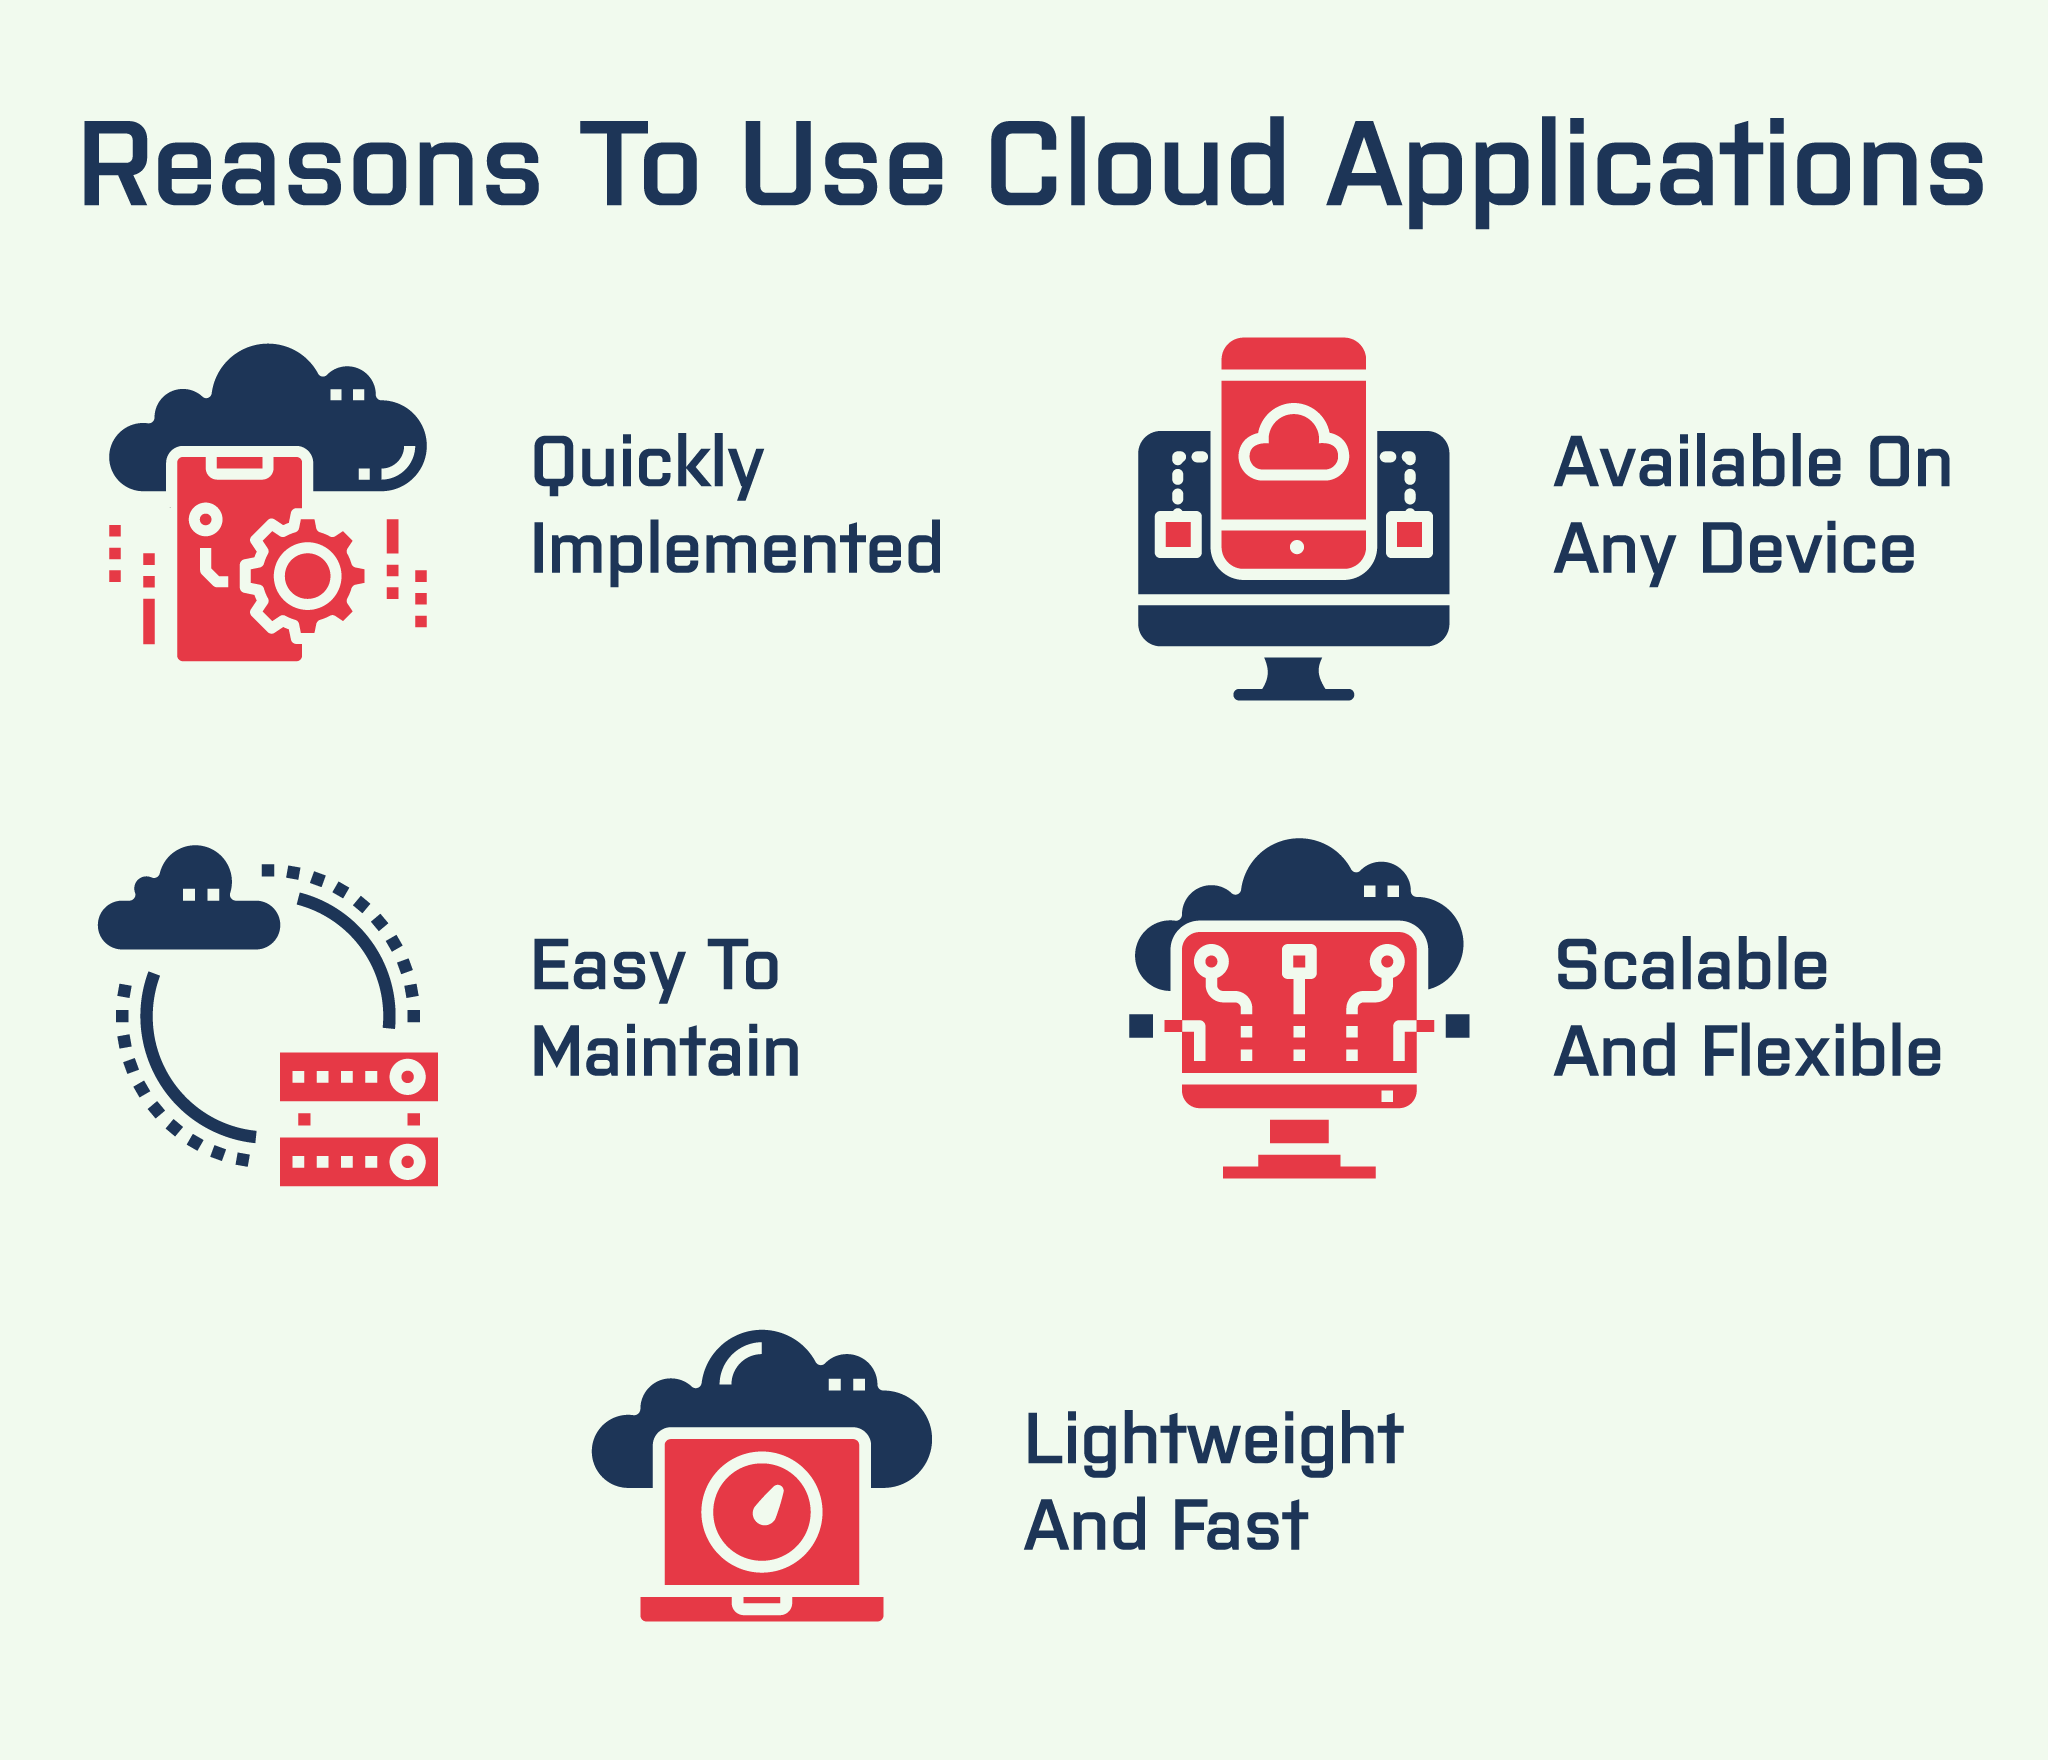 Reasons to use cloud applications